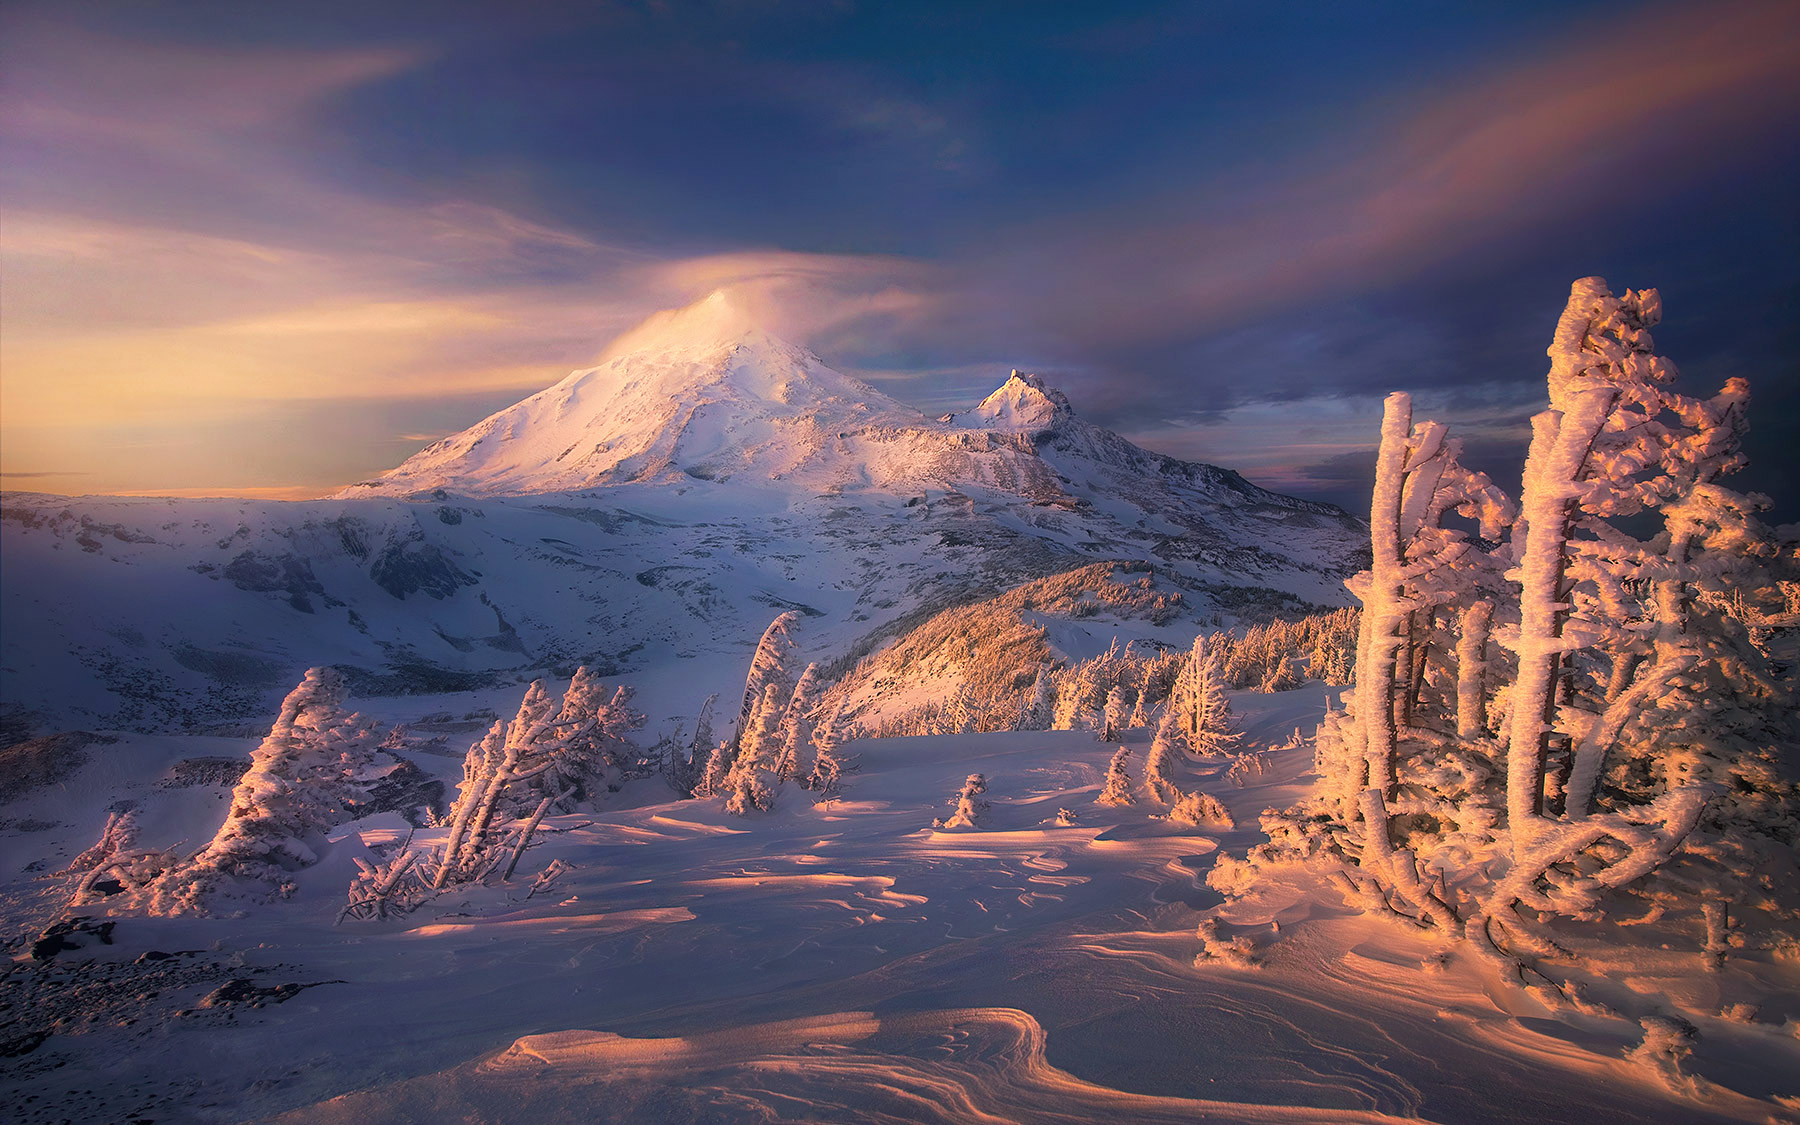 sunset, snow, winter, oregon, three sisters, chambers, wilderness, unique, rim, ice, photo